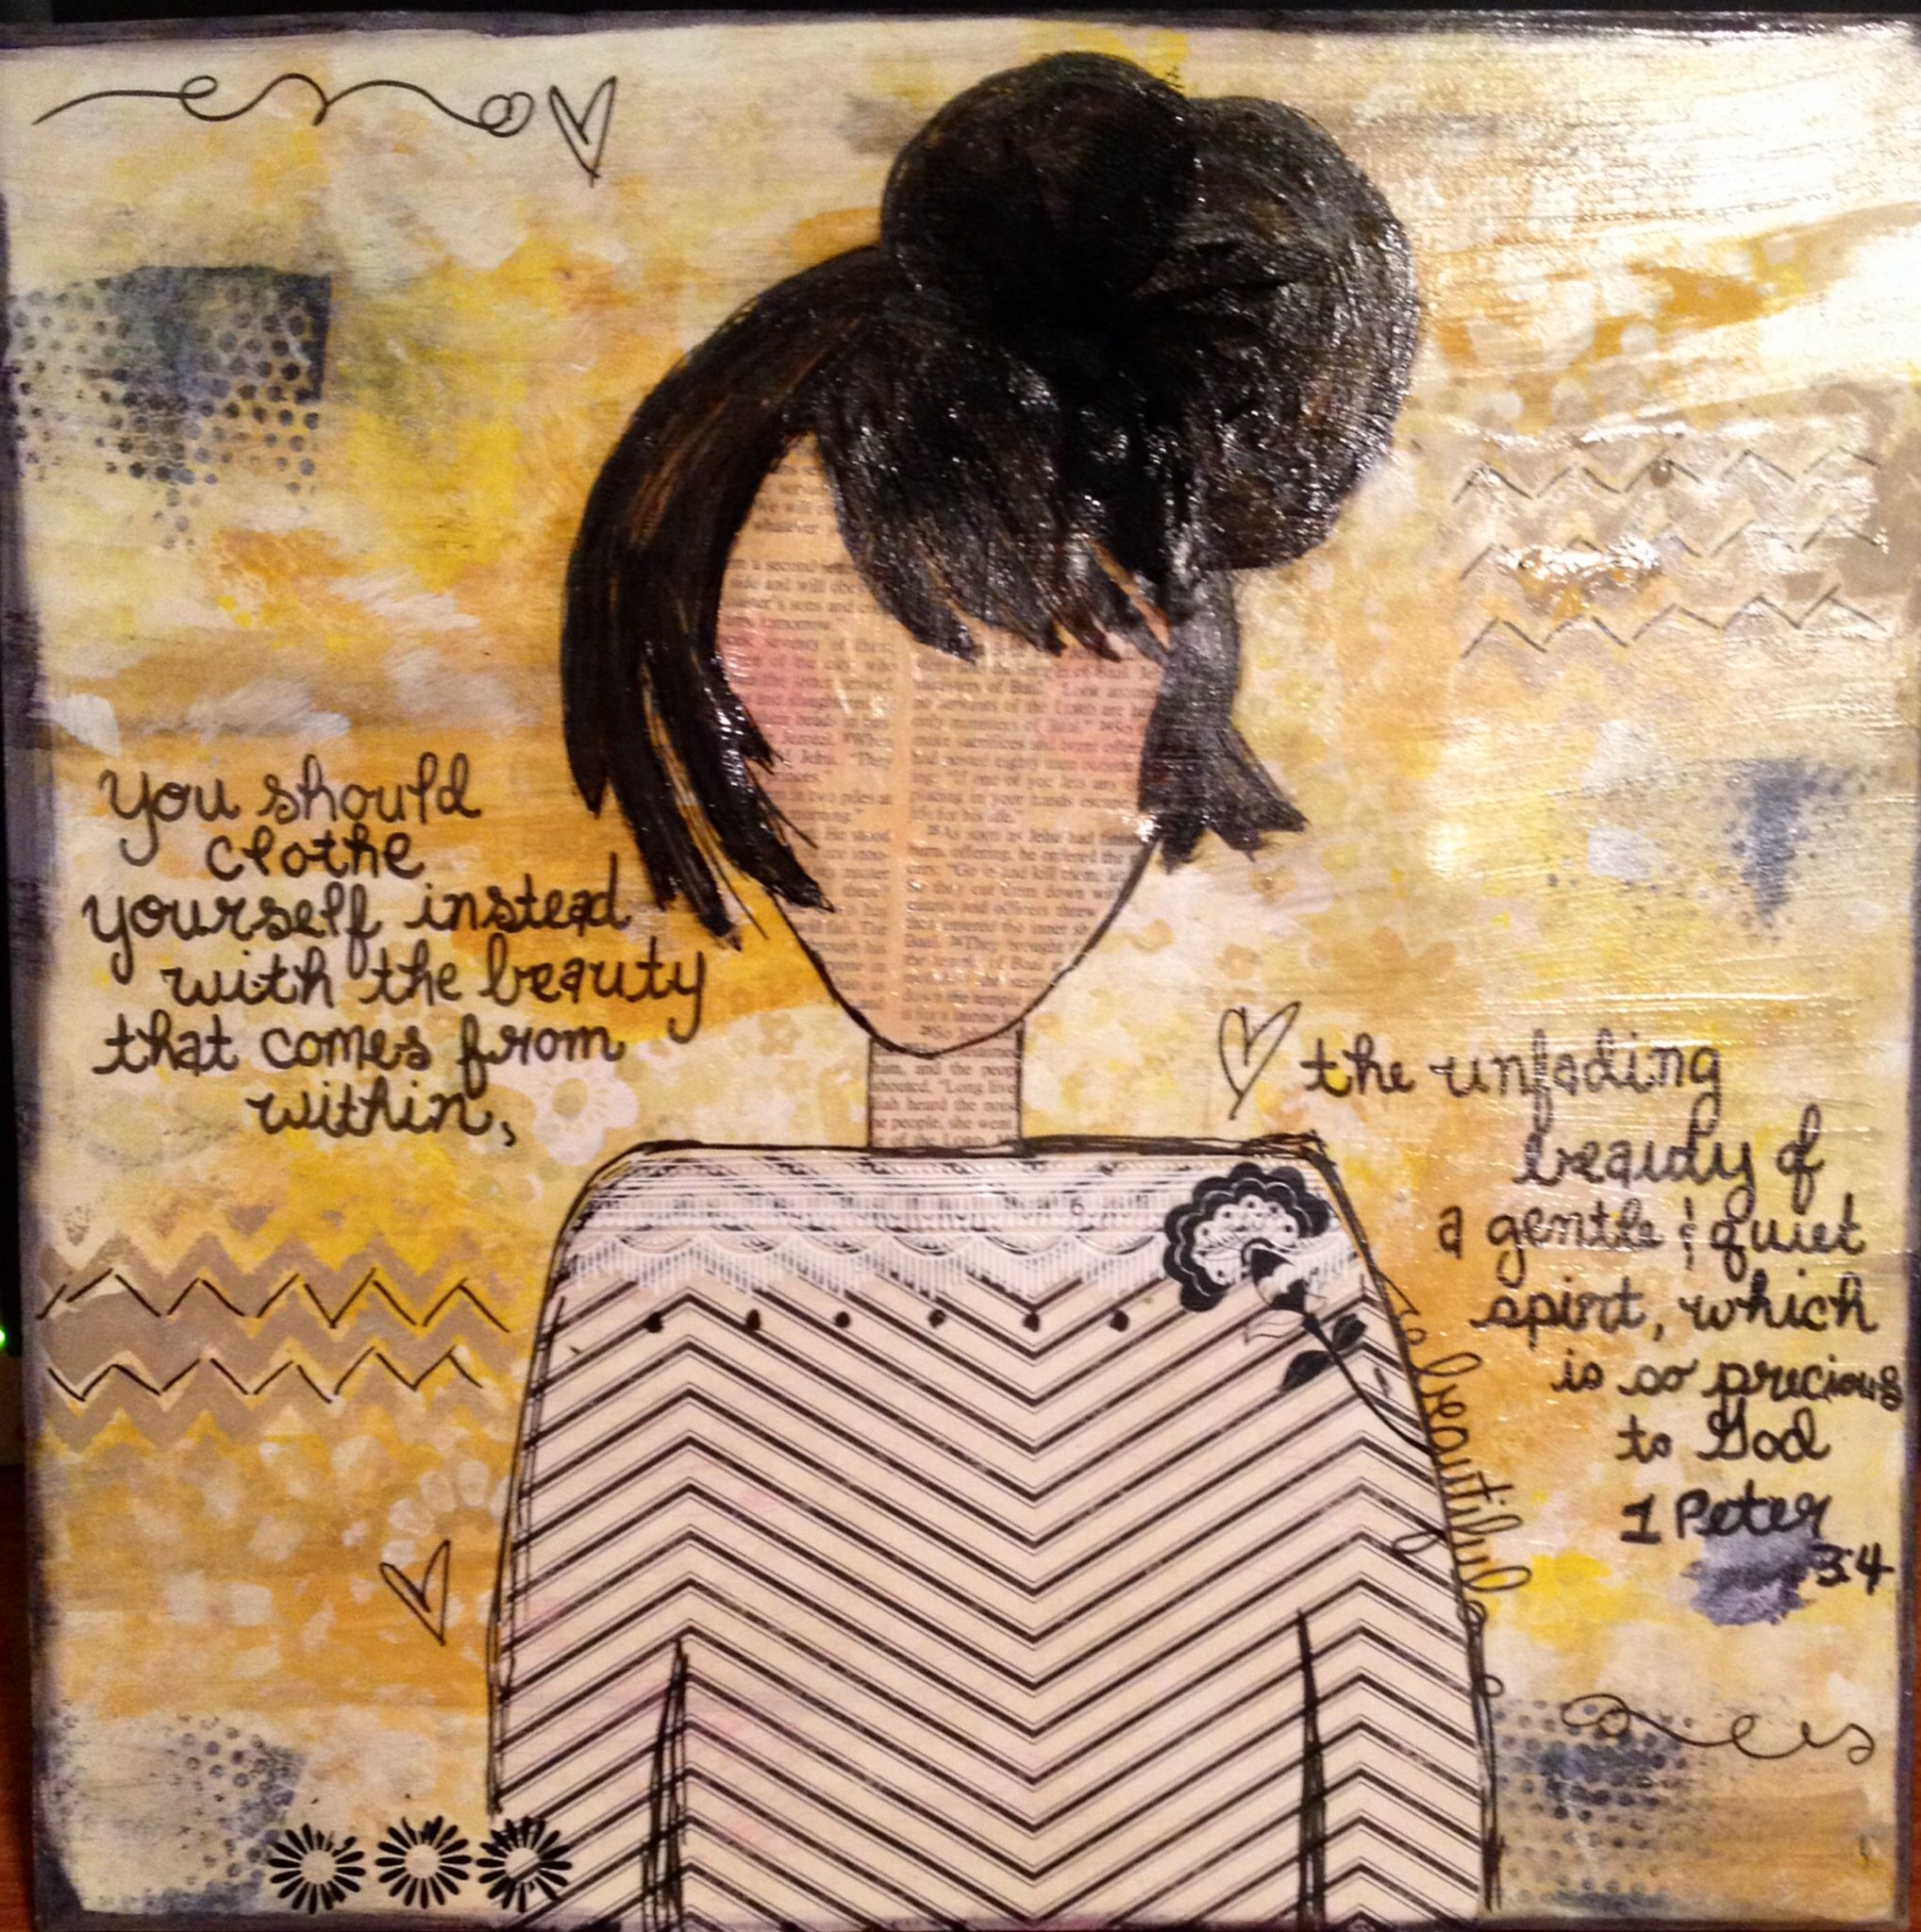 She Art 1 Peter 3:4 (mixed media)